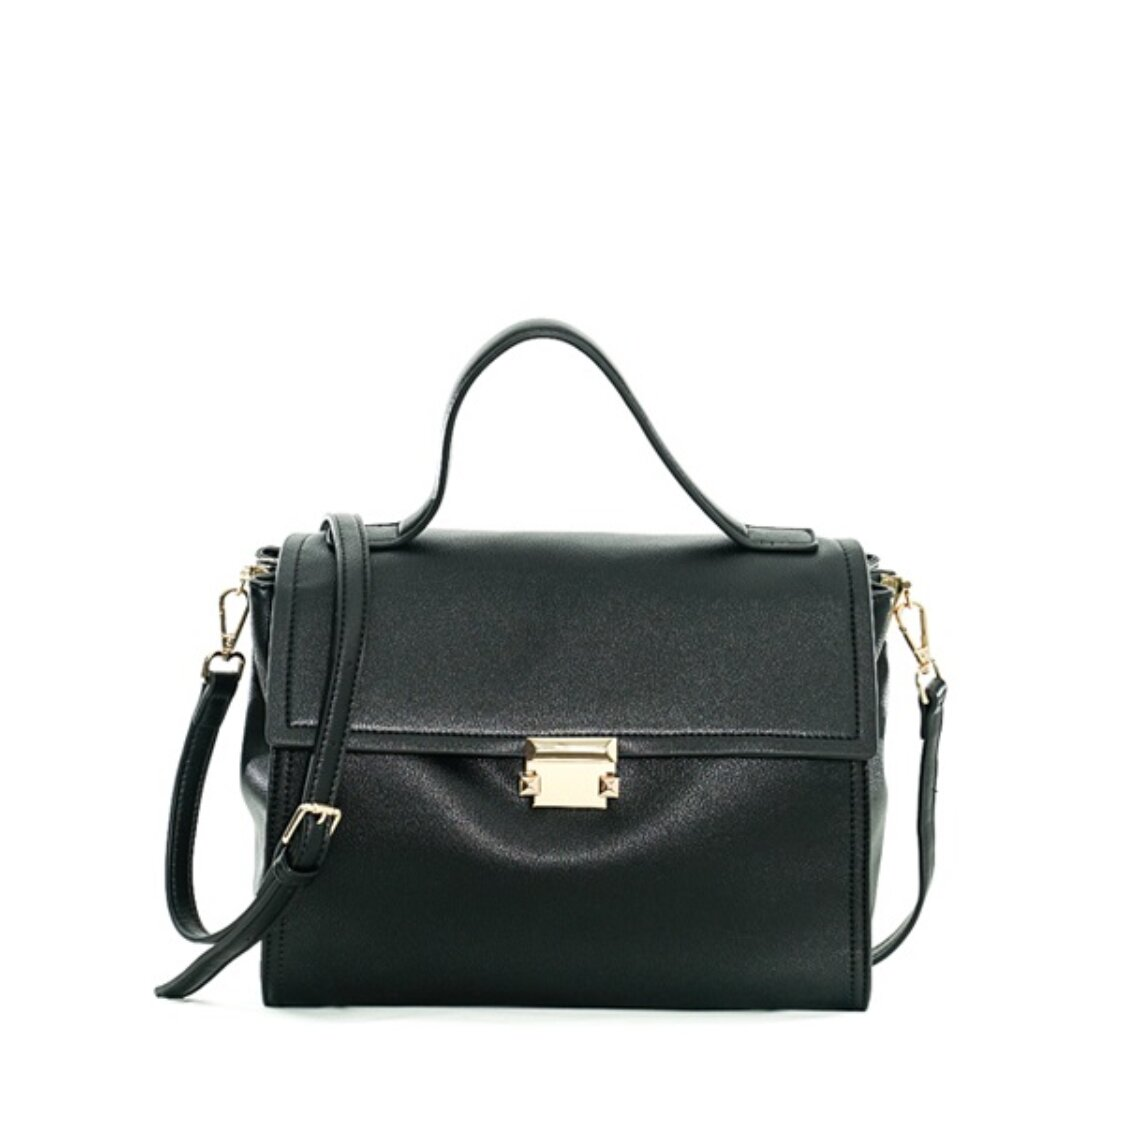 Renoma Medium Shoulder Bag Black